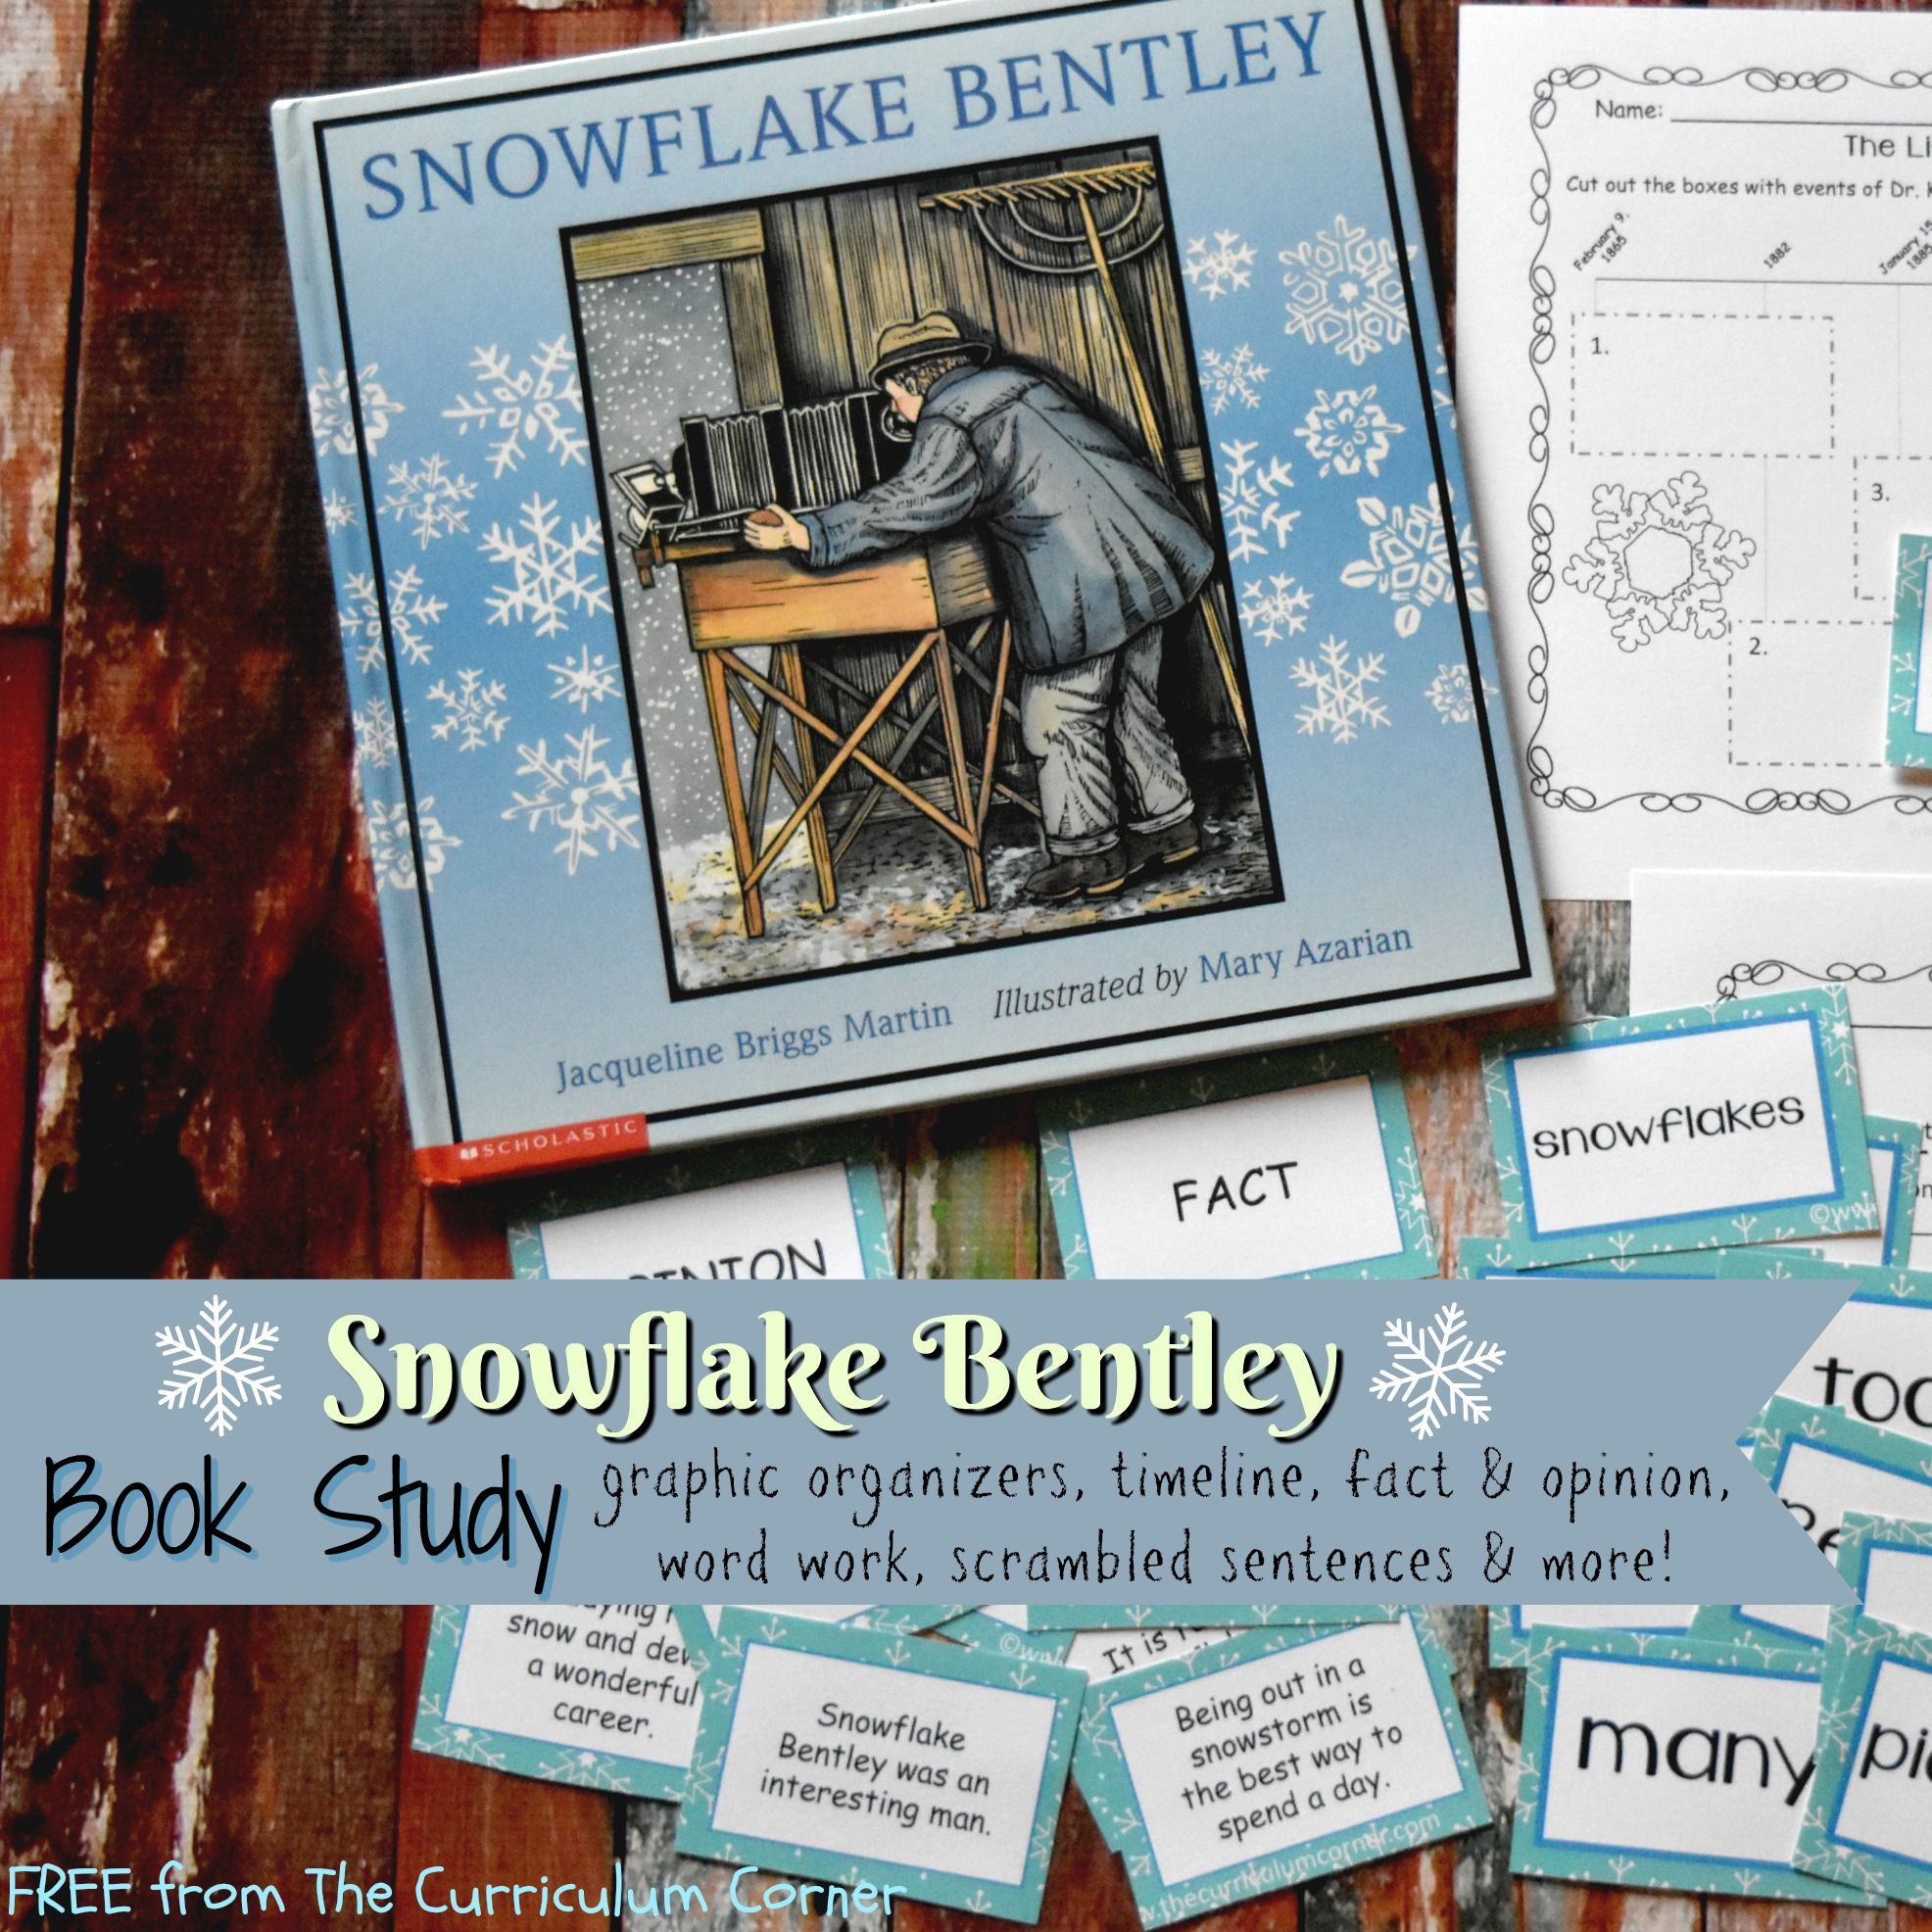 Book Study Snowflake Bentley